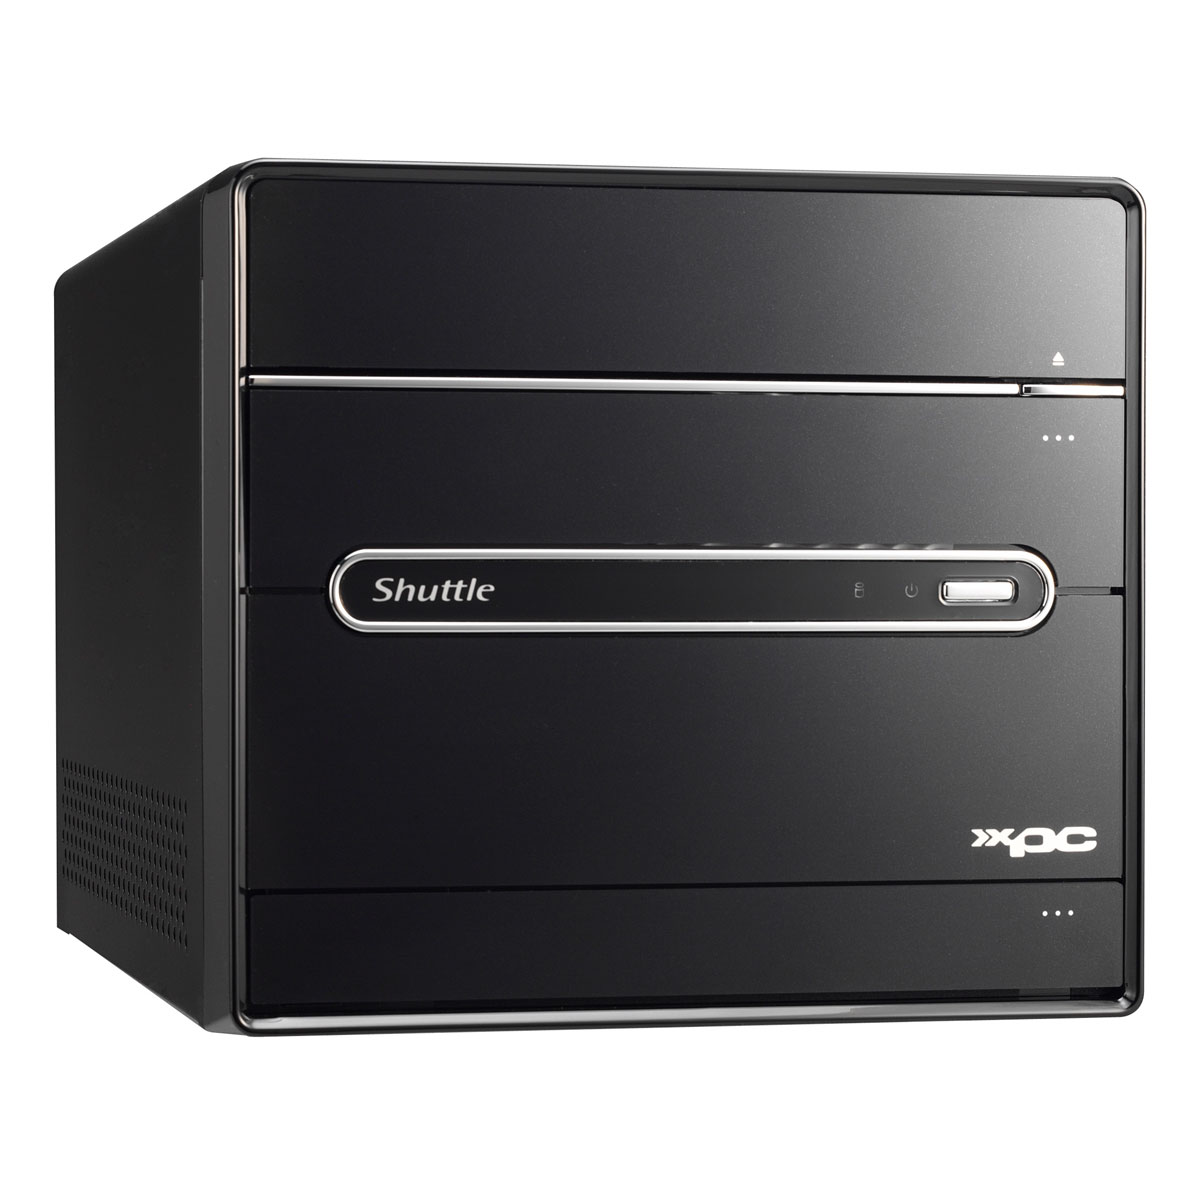 Barebone PC Shuttle SH67H7 Mini-Barebone (Intel H67 Express) Mini-Barebone (Intel H67 Express)